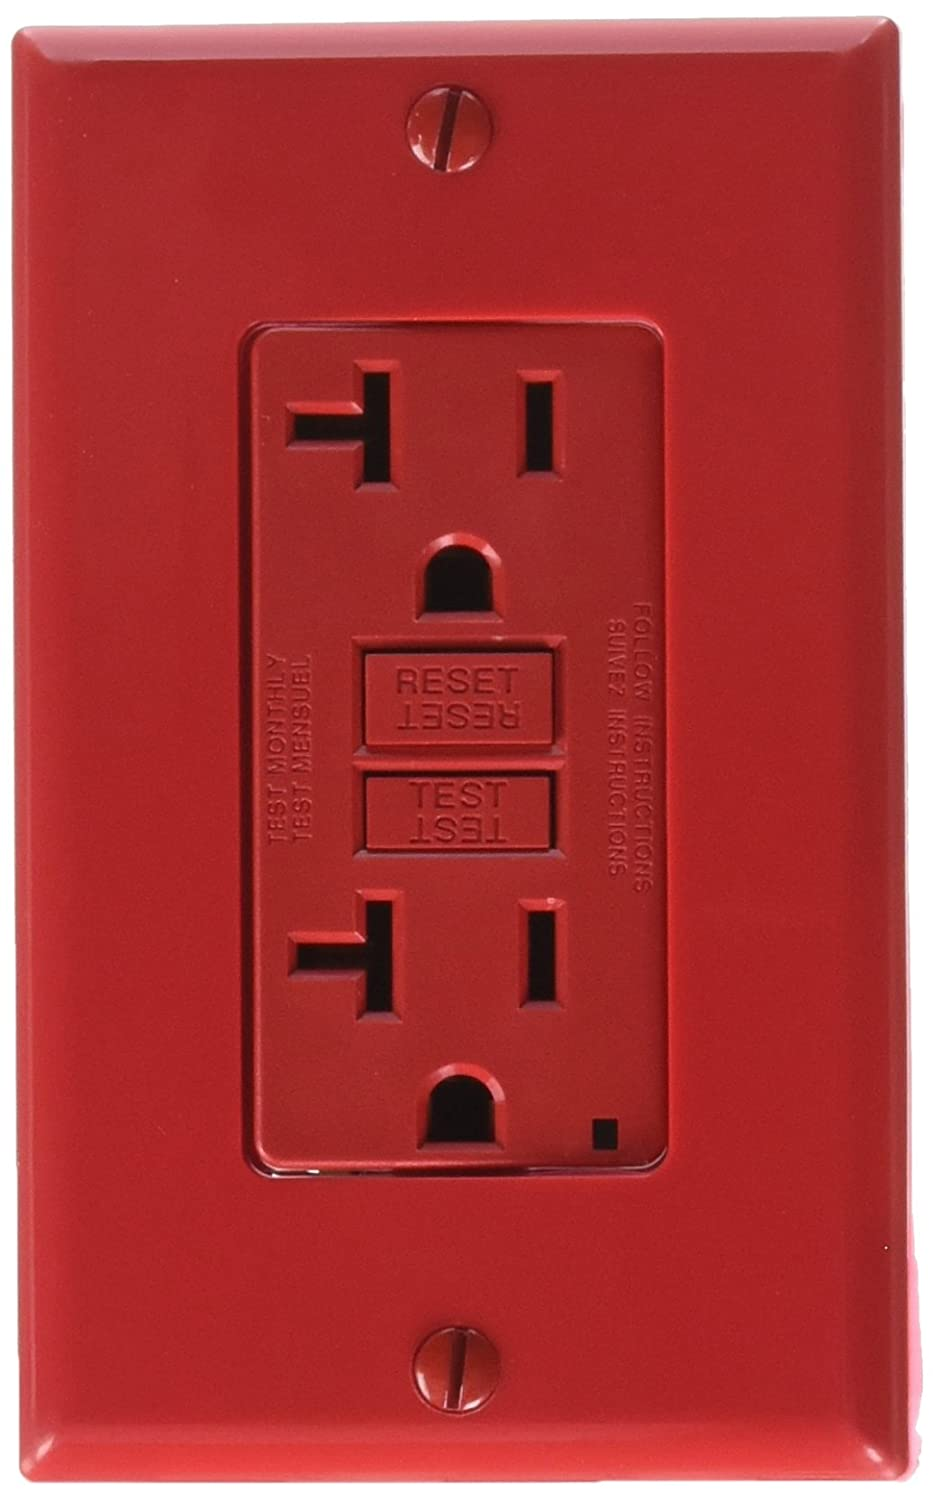 Leviton Gfnt2 R Self Test Smartlockpro Slim Gfci Non Tamper 15 Or 20 Amp Weather Resistant Receptacles Receptacle With Led Indicator Red